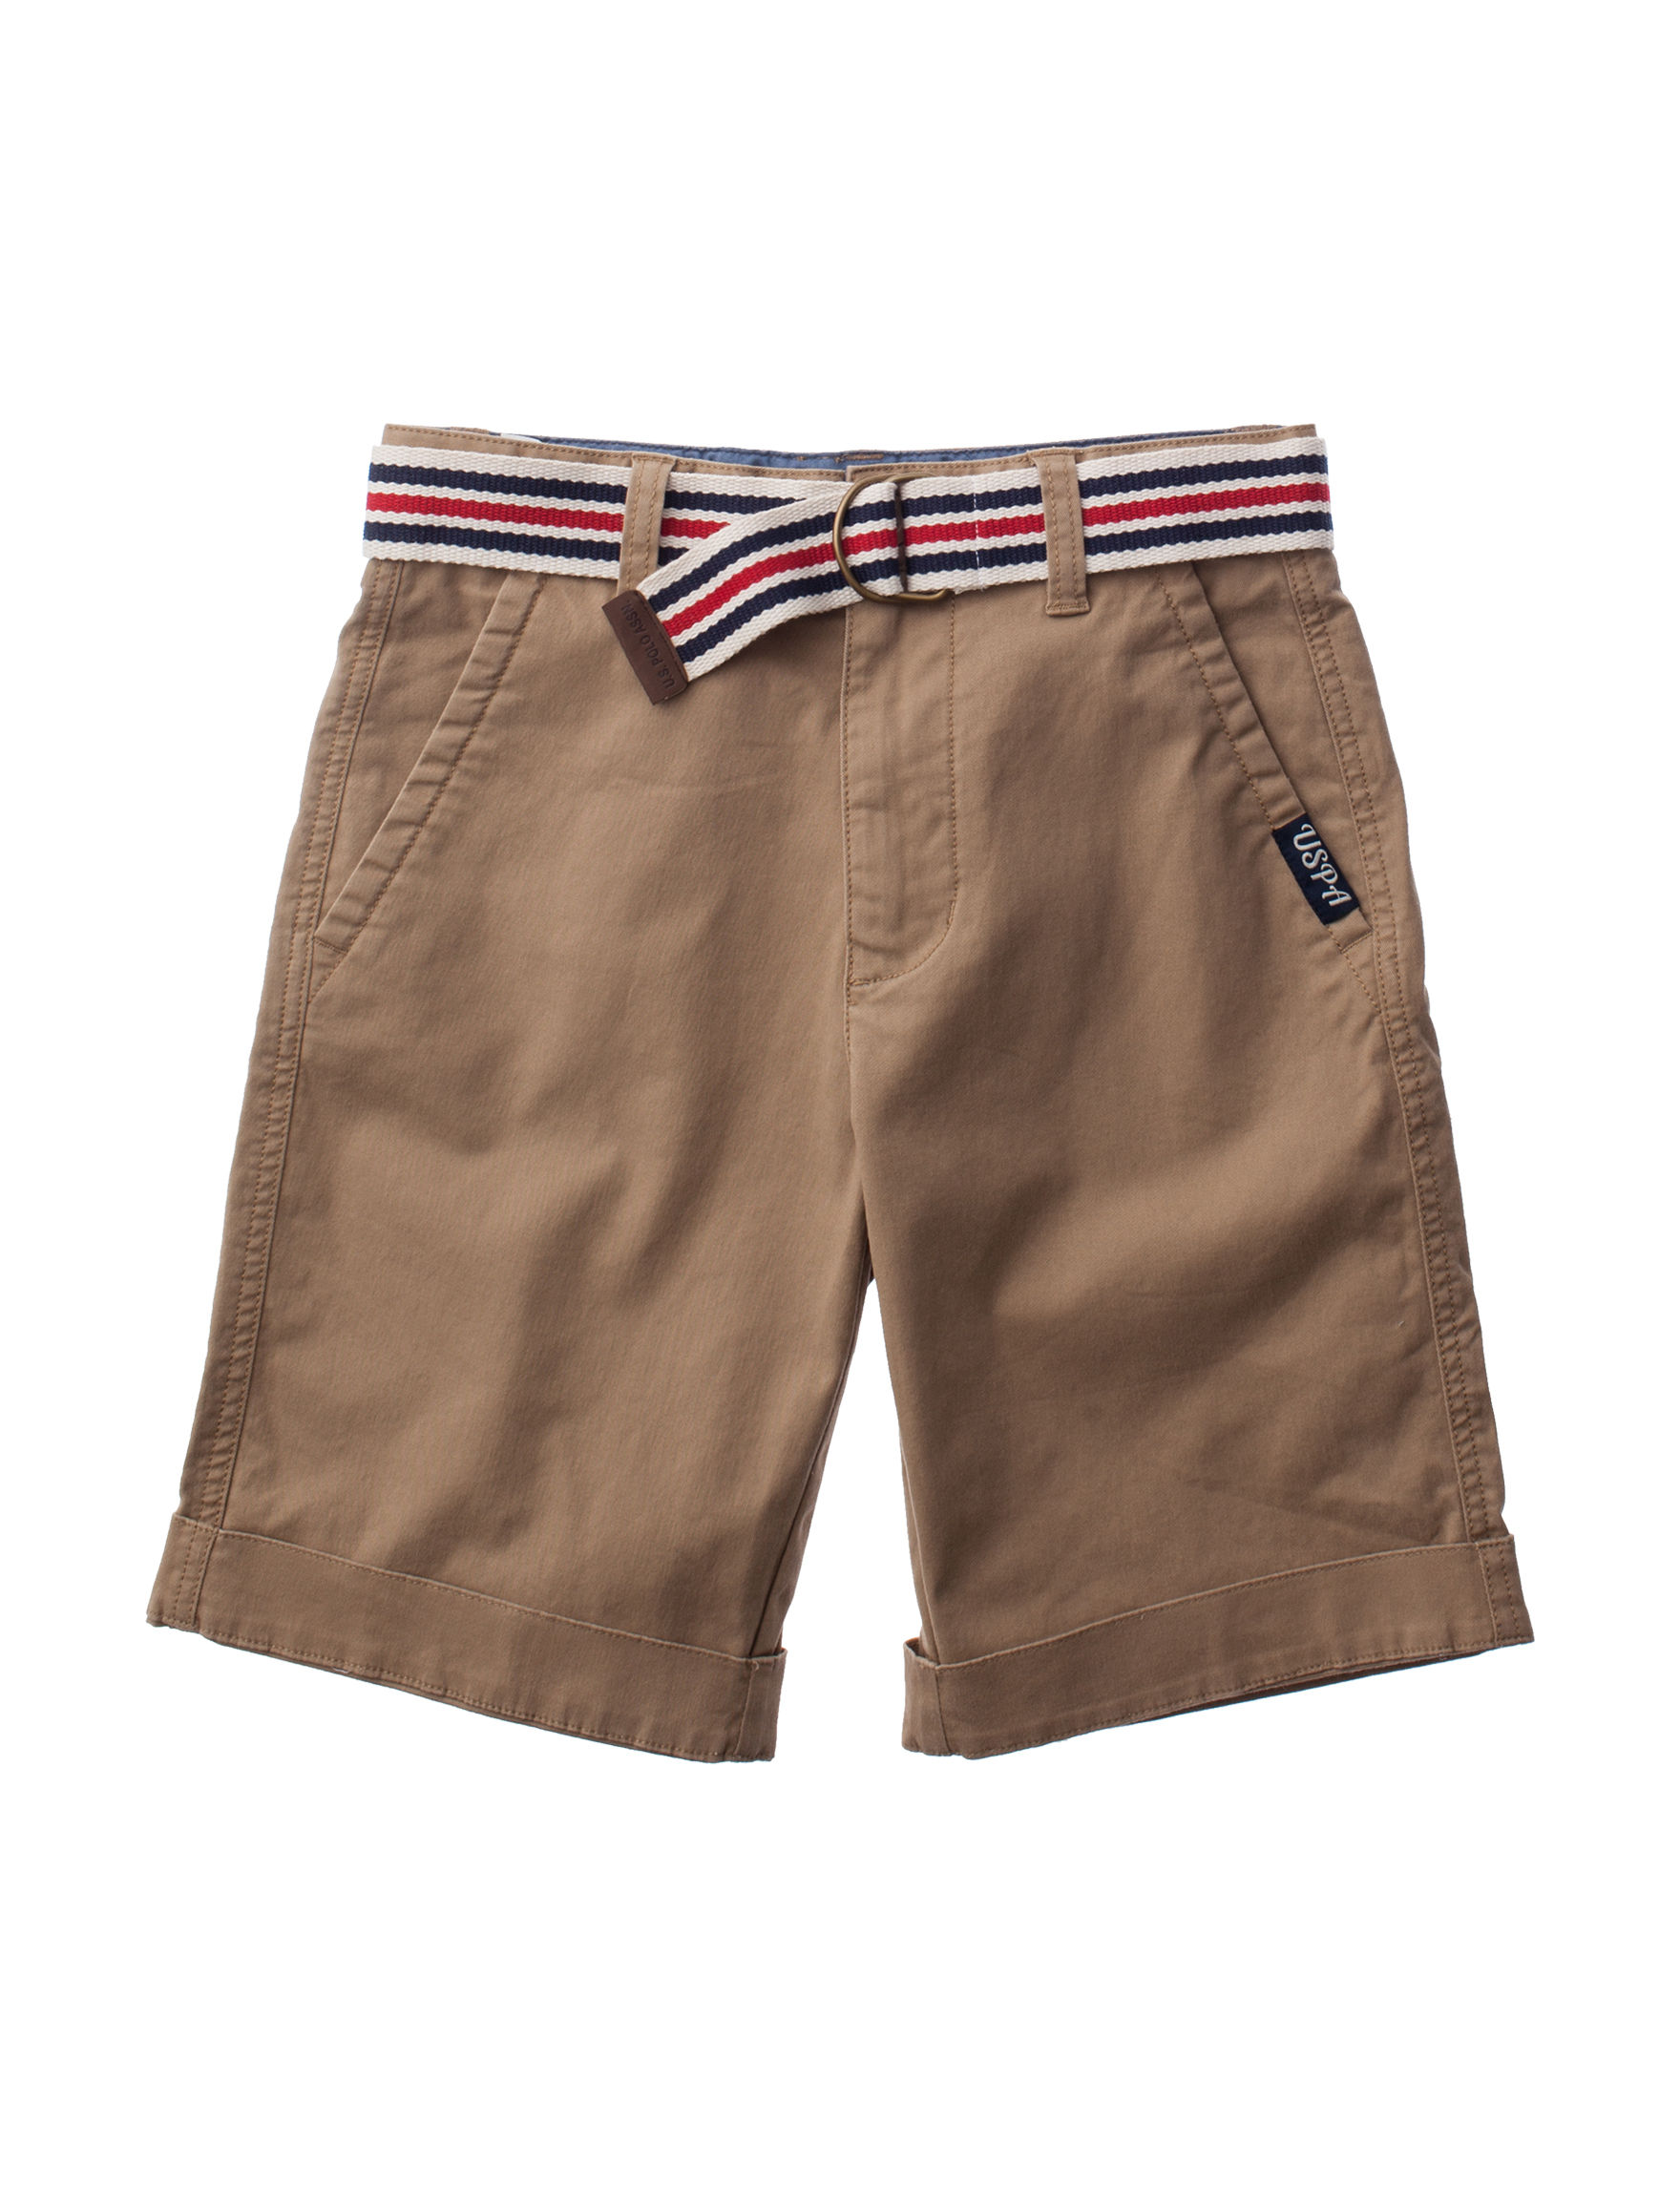 U.S. Polo Assn. Dark Beige Relaxed